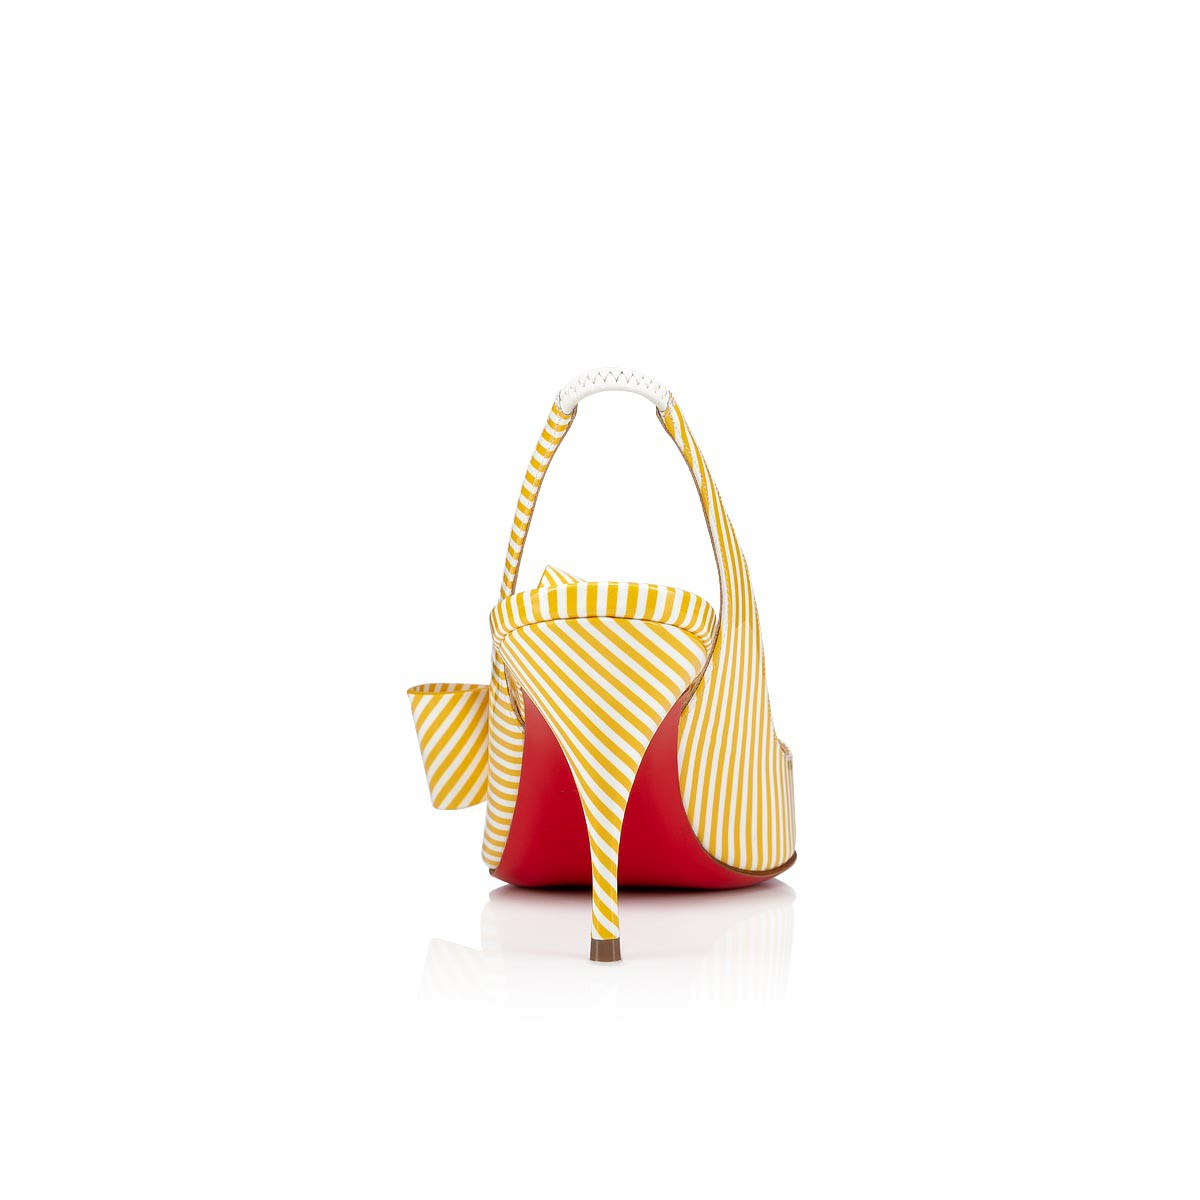 Shoes - Clare Nodo - Christian Louboutin